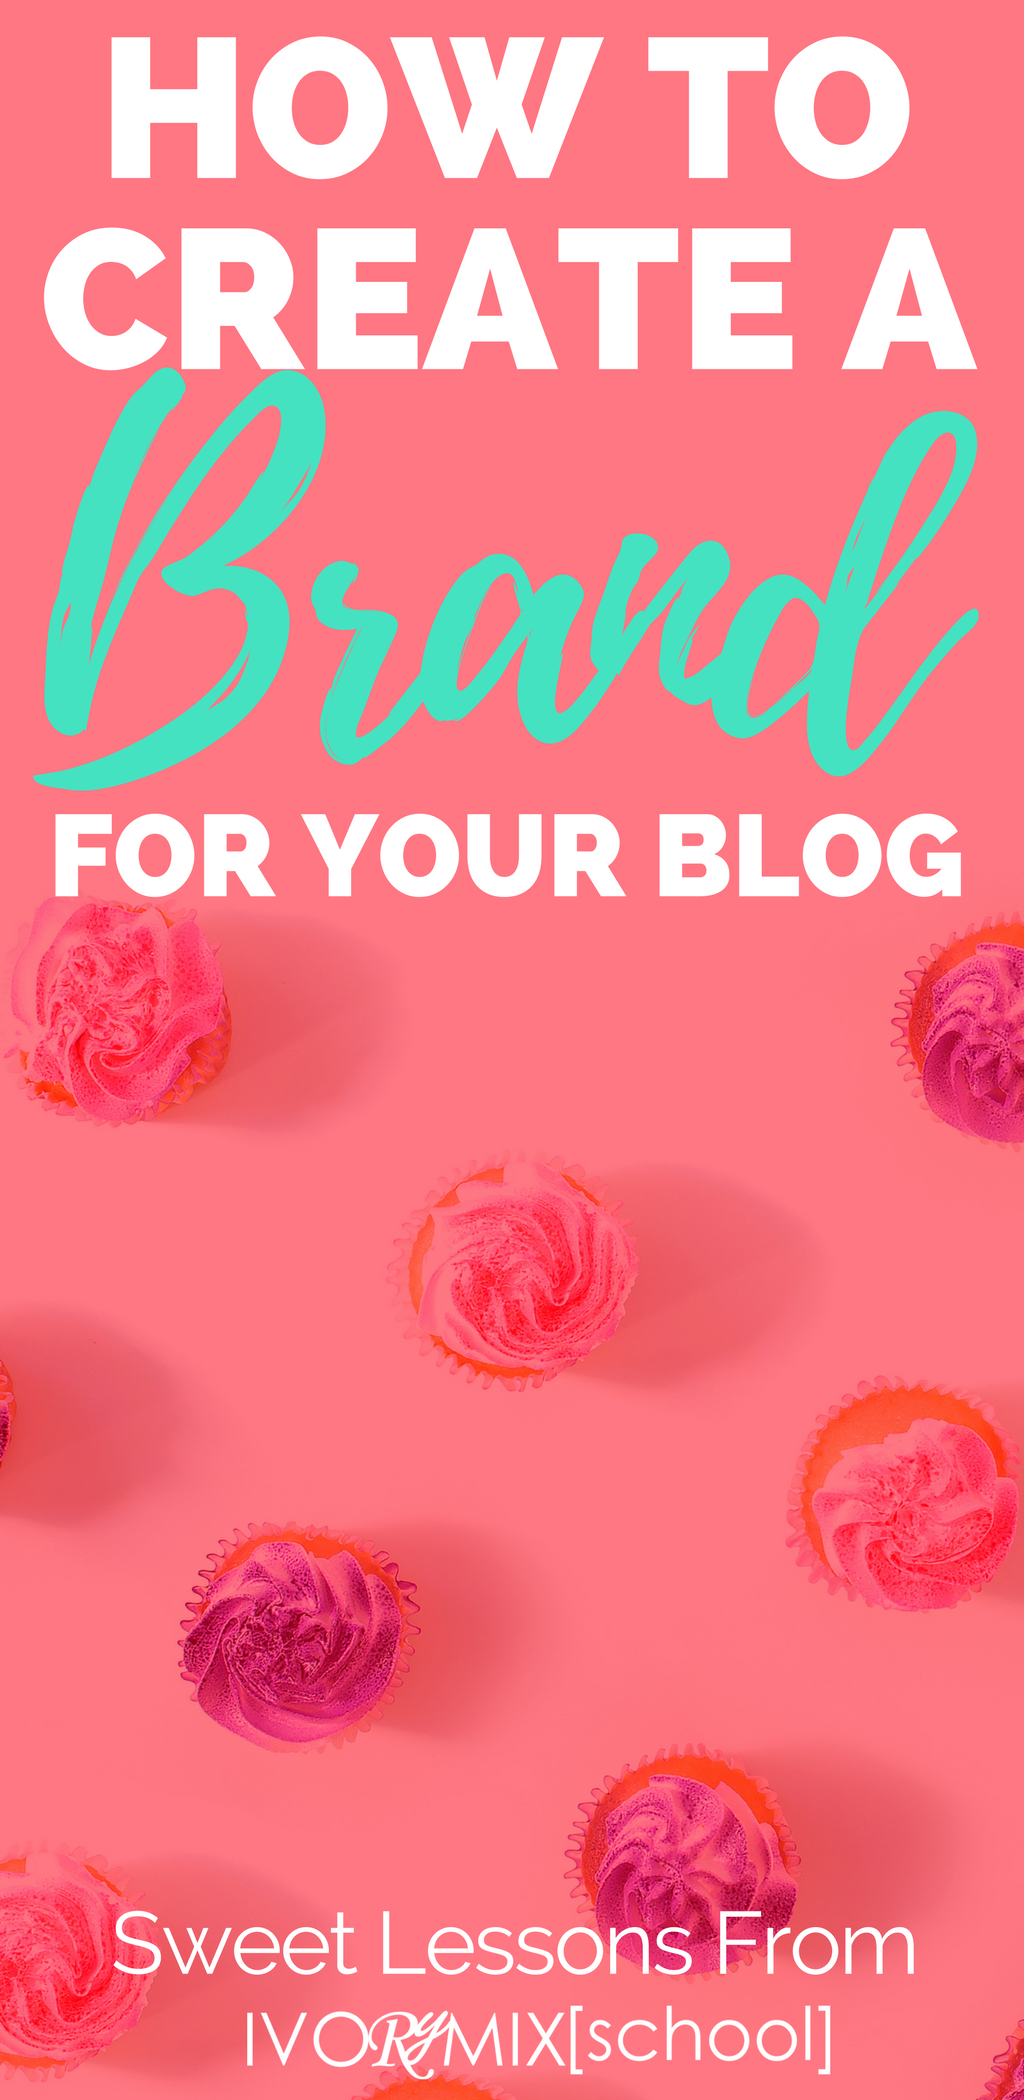 how-to-create-a-brand-for-your-blog-sweet-lessons-from-ivorymixschool-teachable-com-red-graphic